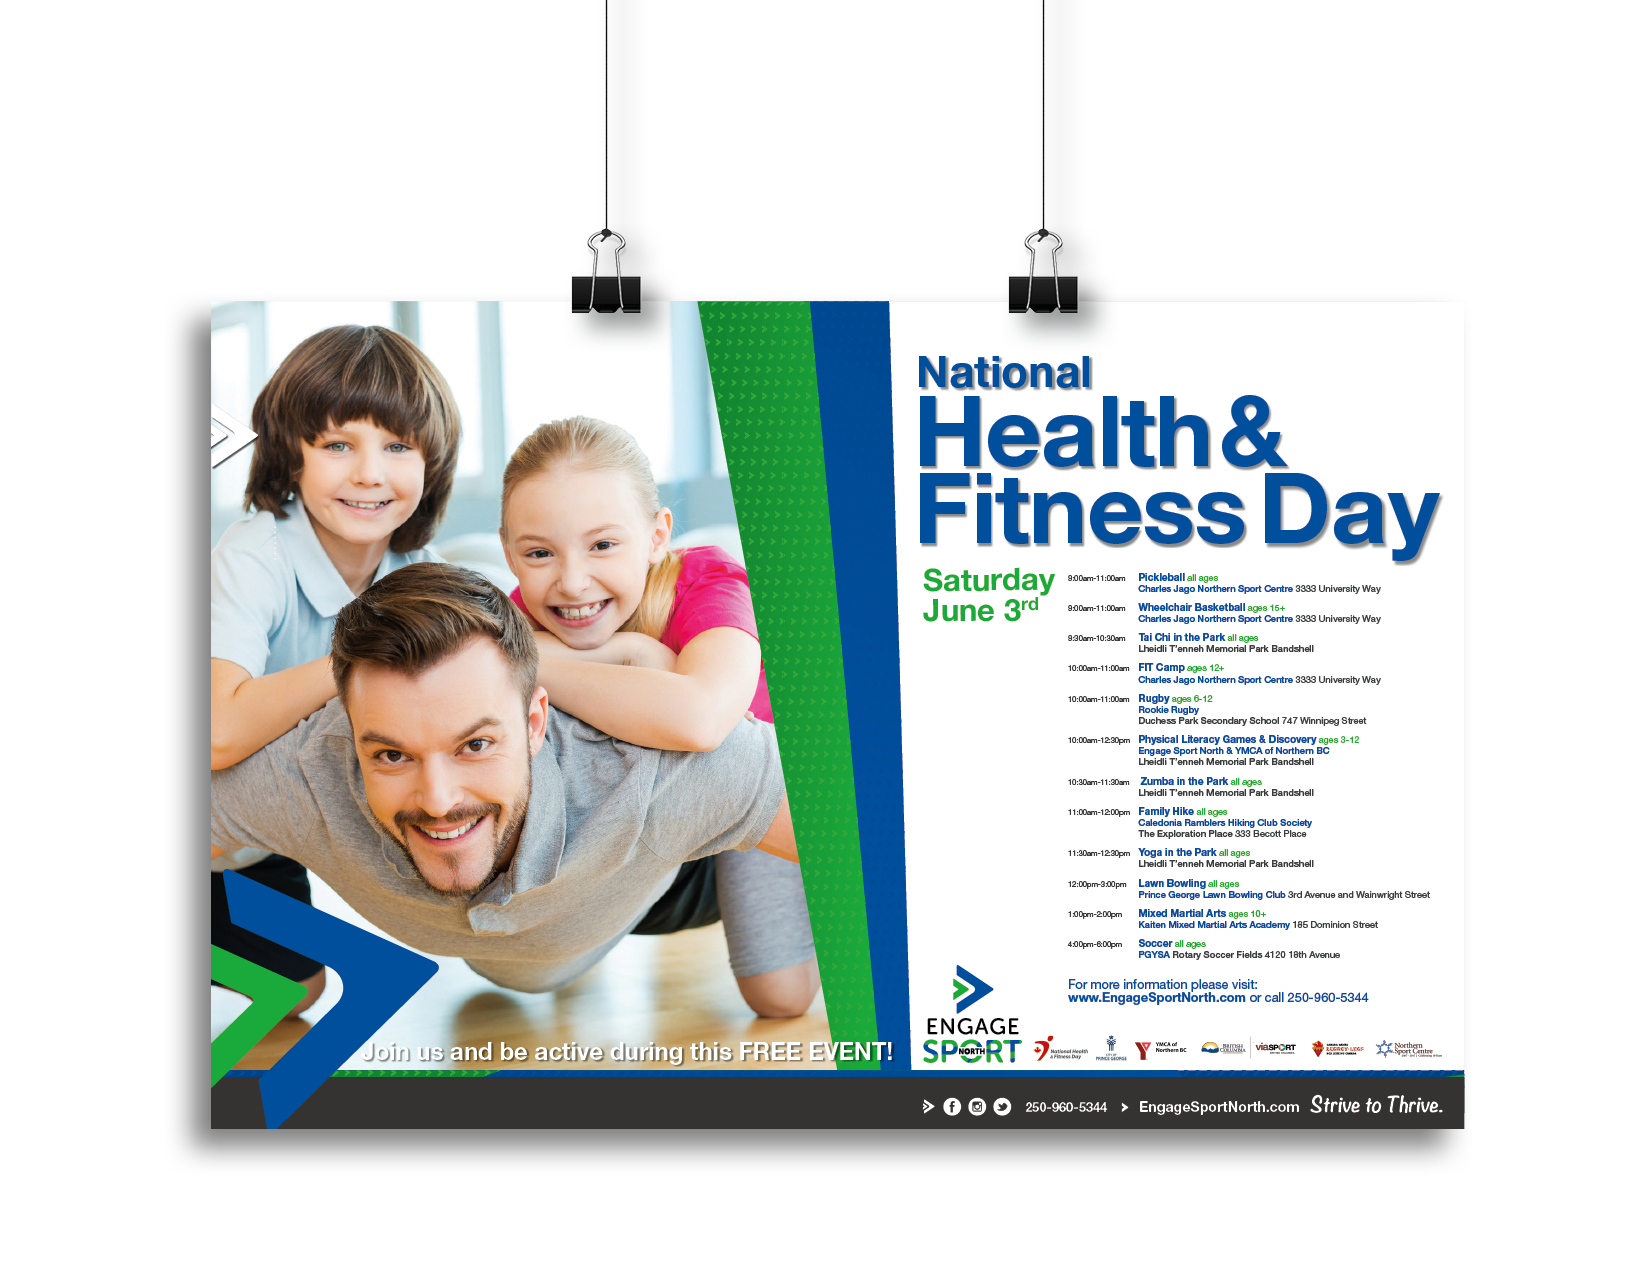 Engage-Sport-North-Health-and-fitness-day-poster-design.jpg